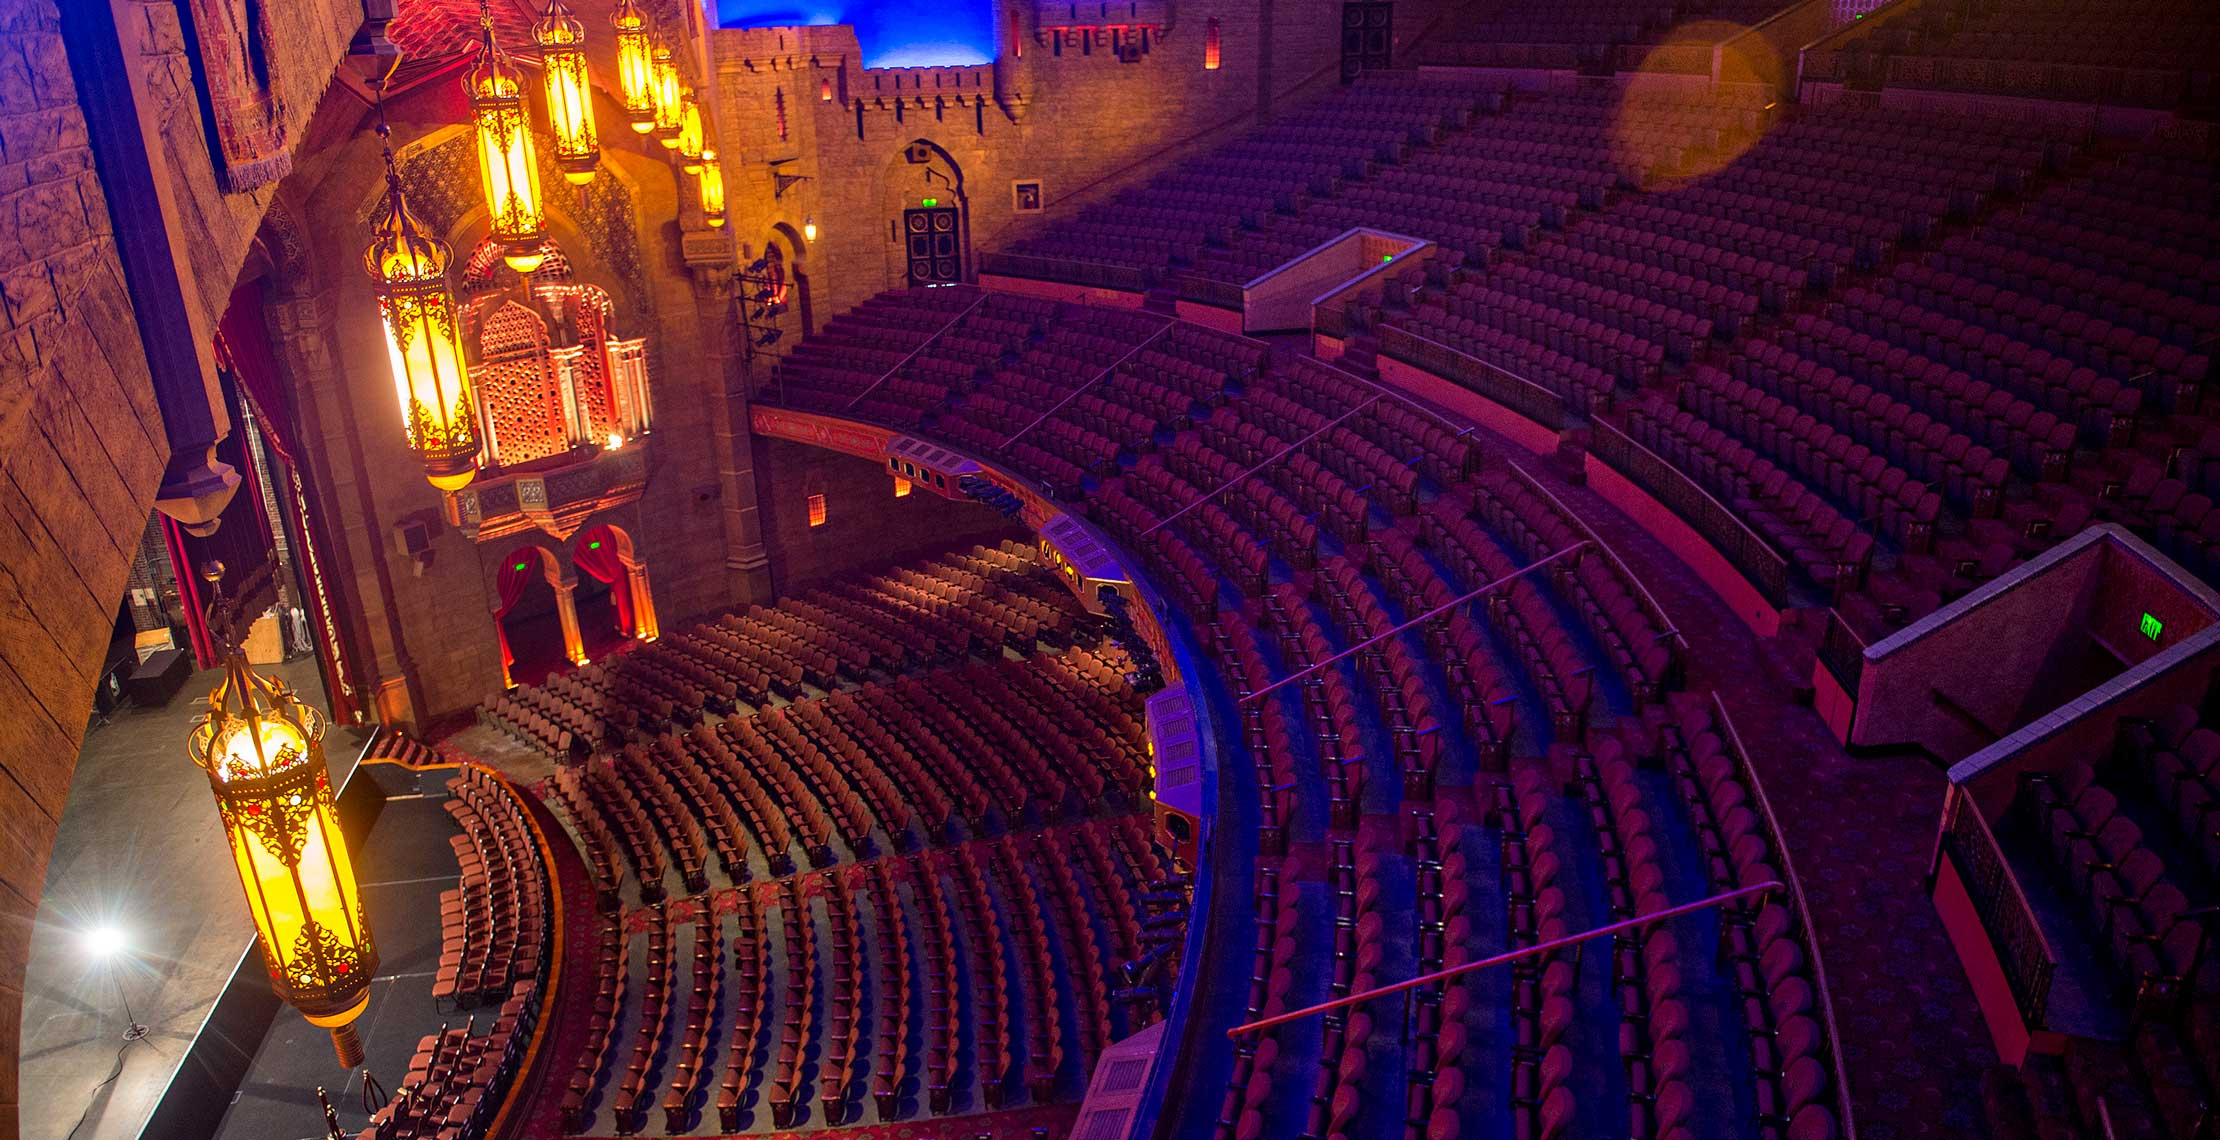 Celebrity Theatre - A theater in-the-round located in ...